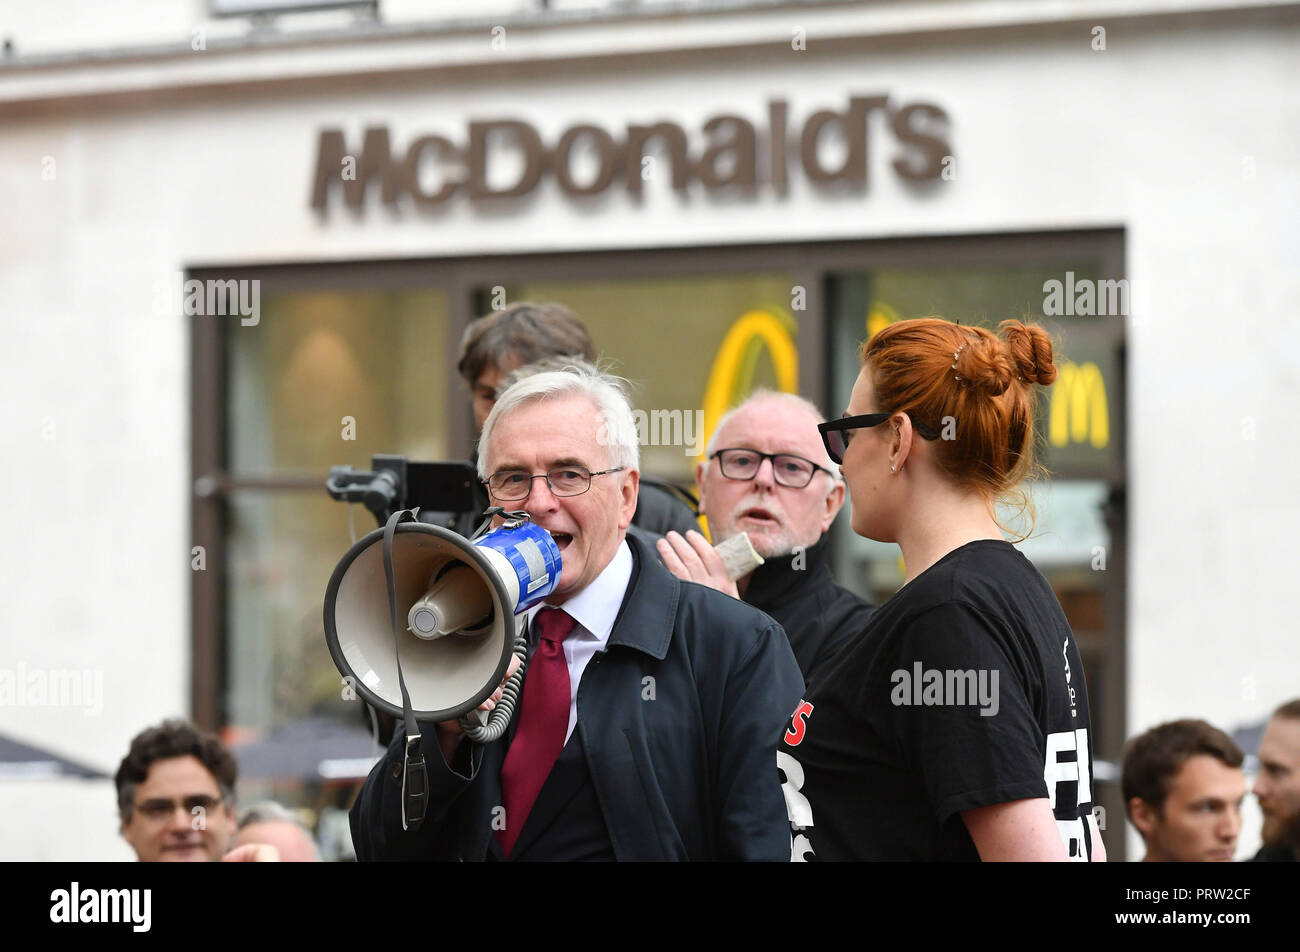 Shadow chancellor John McDonnell speaking at a rally about disputes over pay and union recognition in Leicester Square, London. - Stock Image